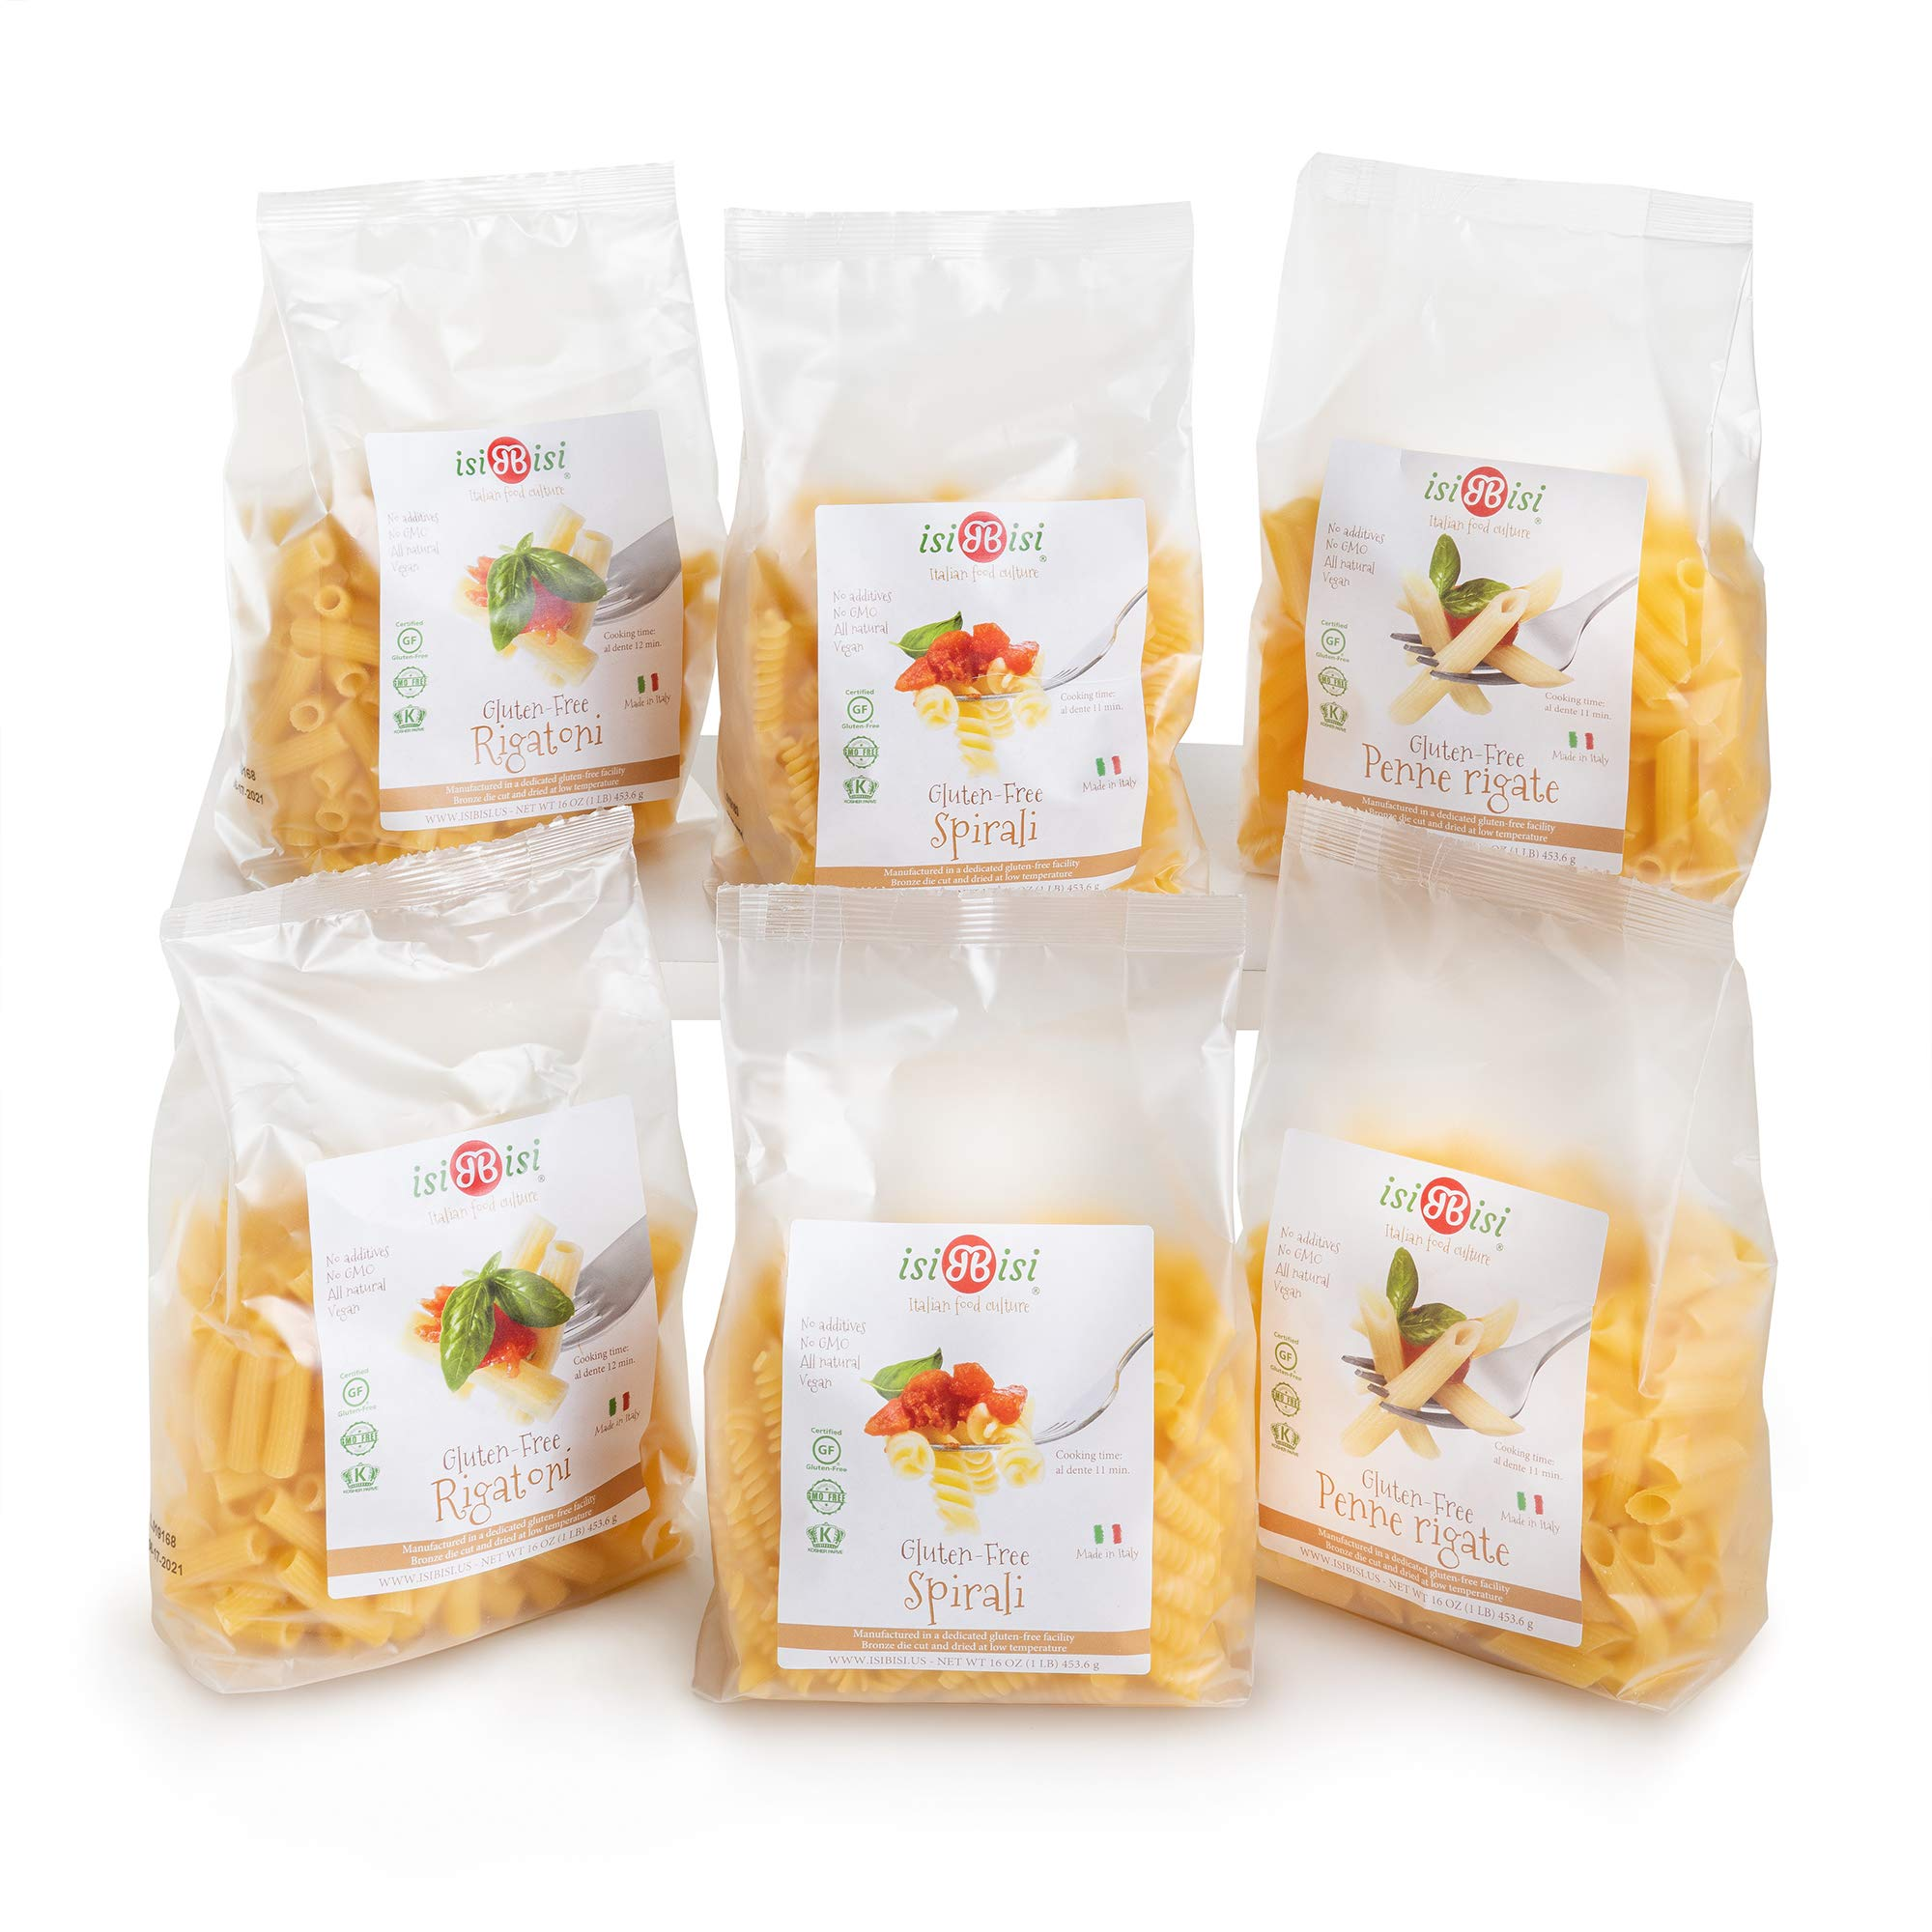 isiBisi Gluten Free Pasta Sampler - Rice and Corn Flour - Made in Italy (80 oz - 6 Pack) by isiBisi